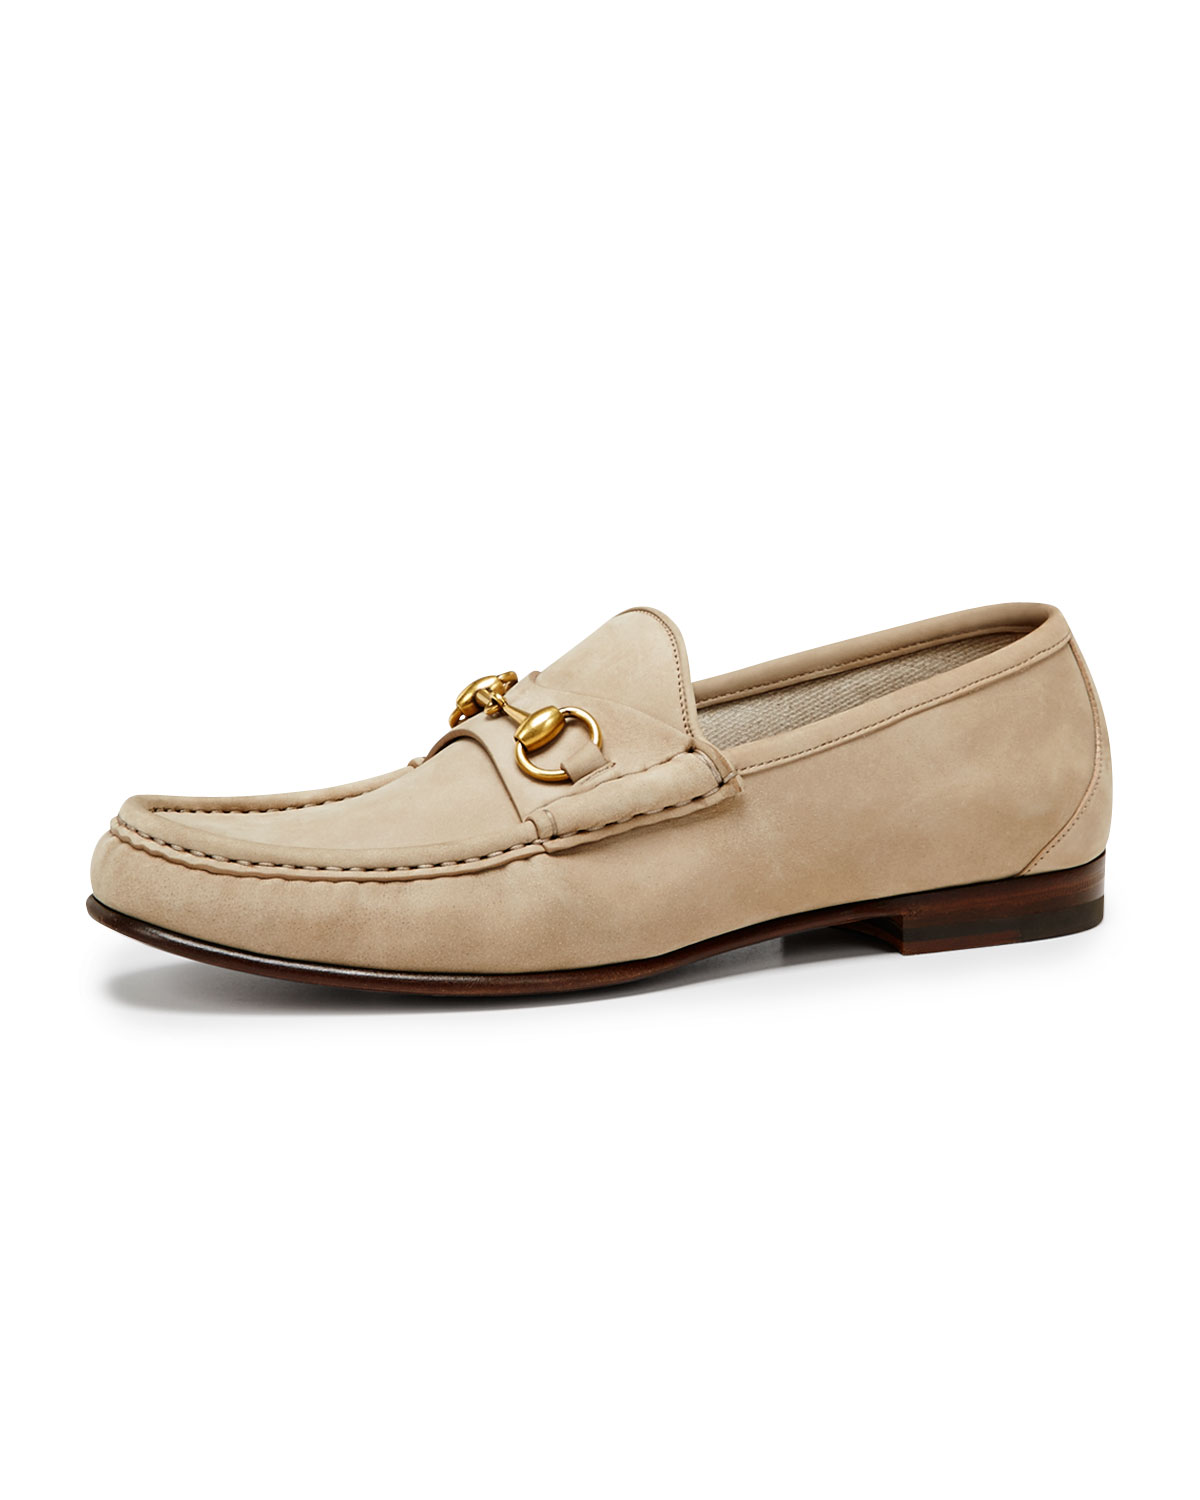 9c72fd260f8 Gucci Roos 1953 Suede Horsebit Loafer